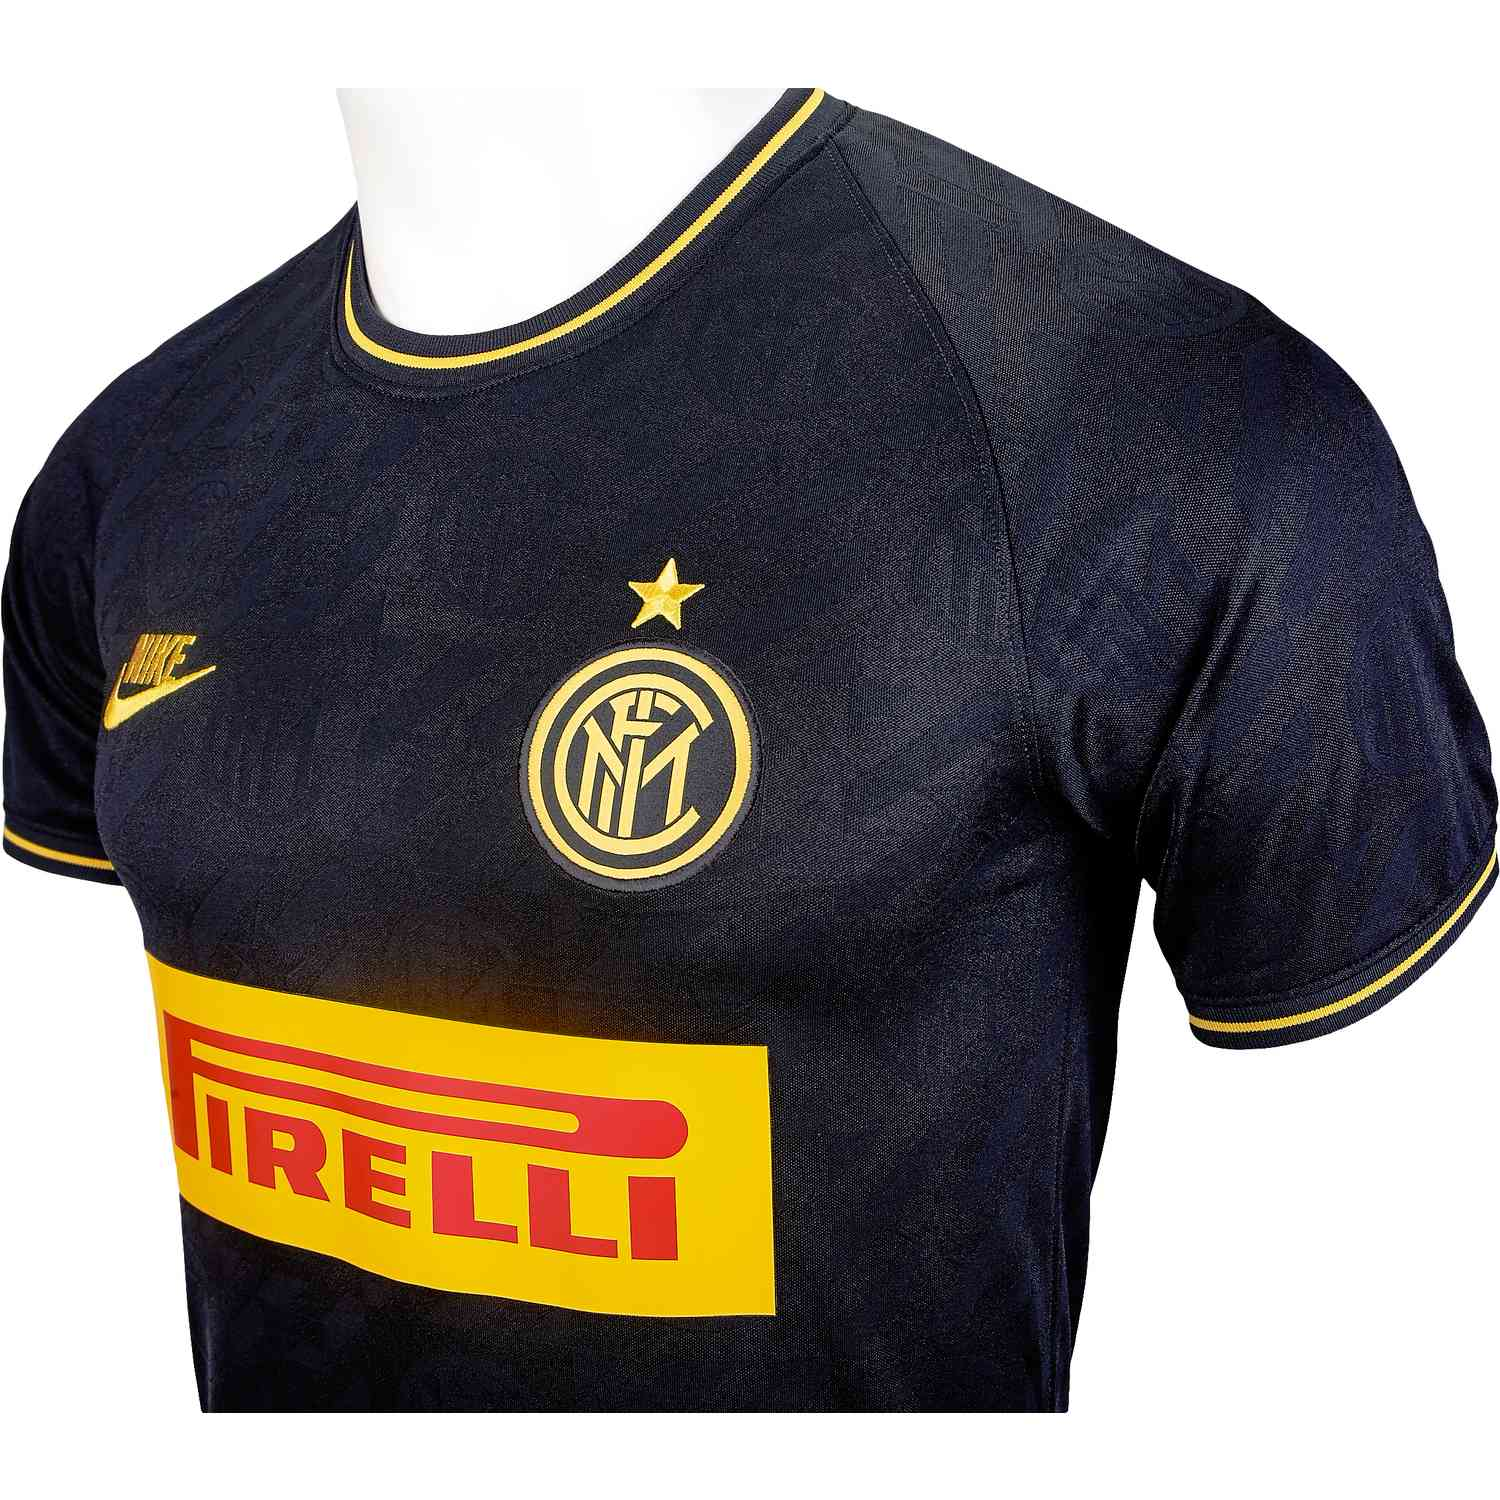 check out 3ab78 5fb1f Inter Milan 3rd Jersey - 2019/20 - Soccer Master